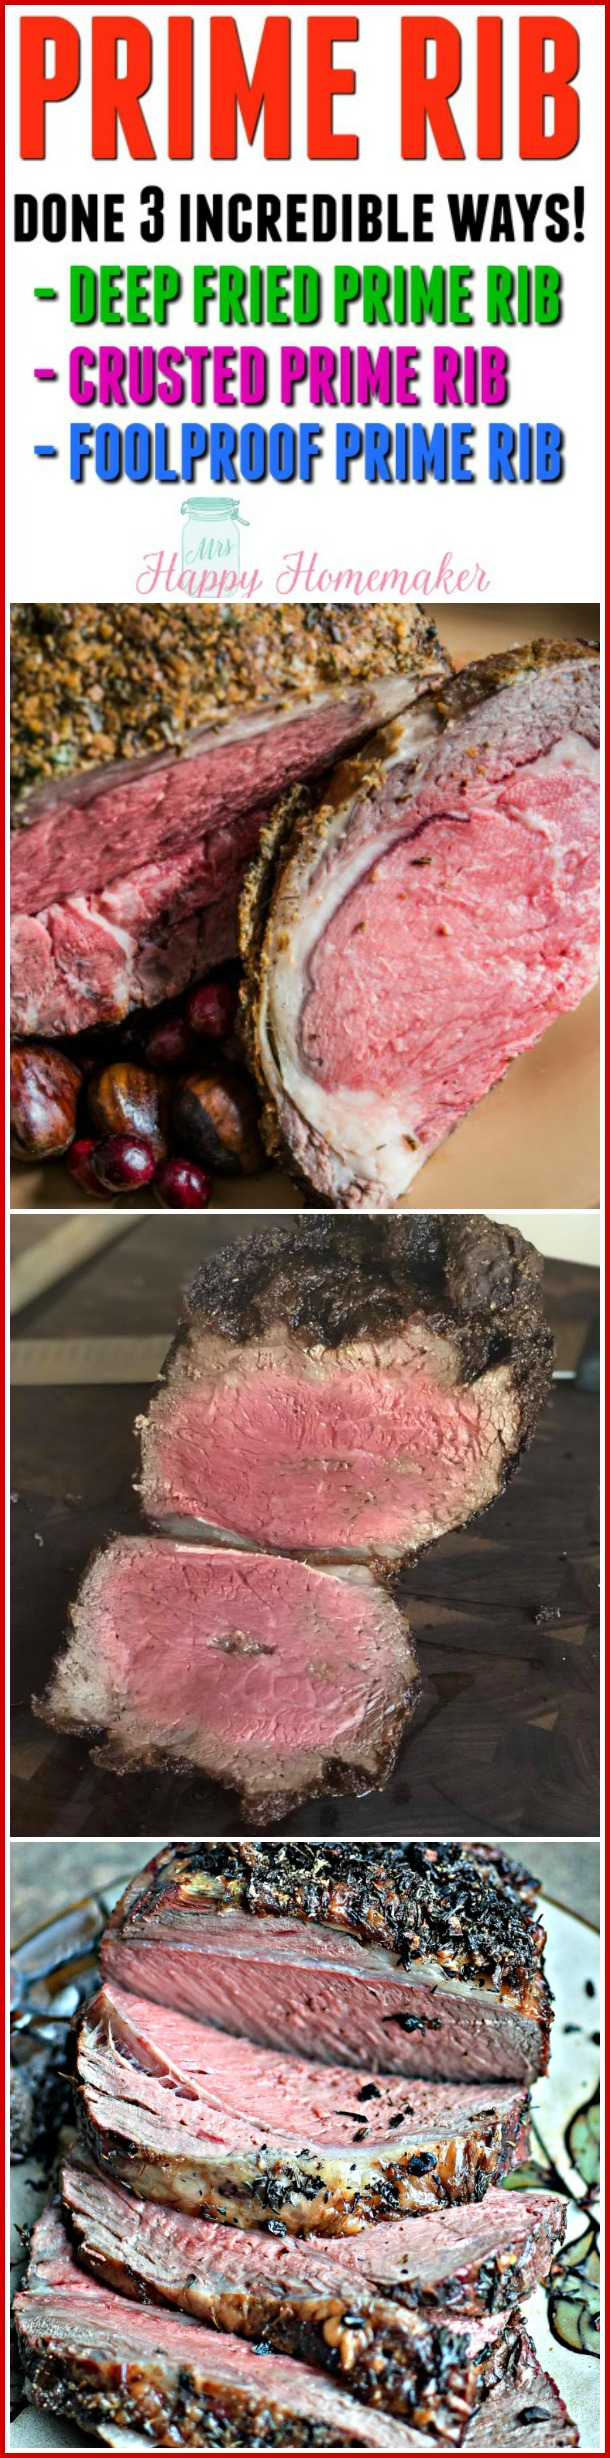 3 incredible ways to cook a prime rib